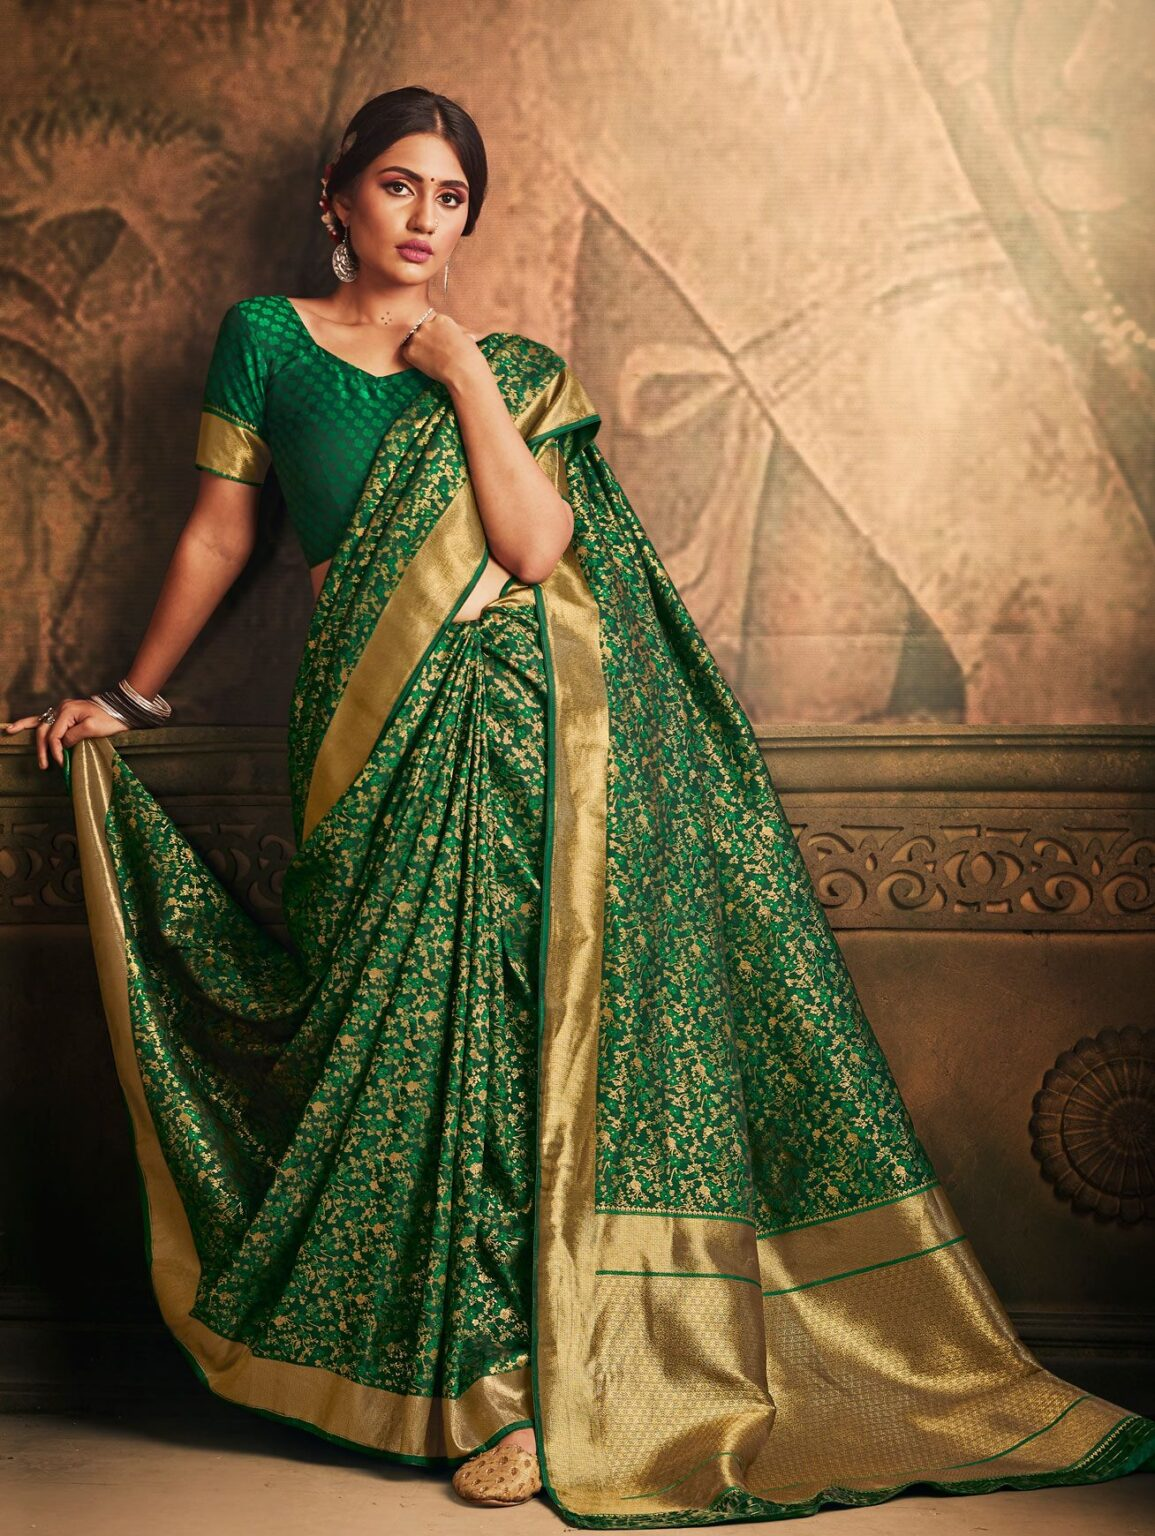 Bottle Green Banarasi Silk Floral Woven Saree with Zari Gold Border and Pallu